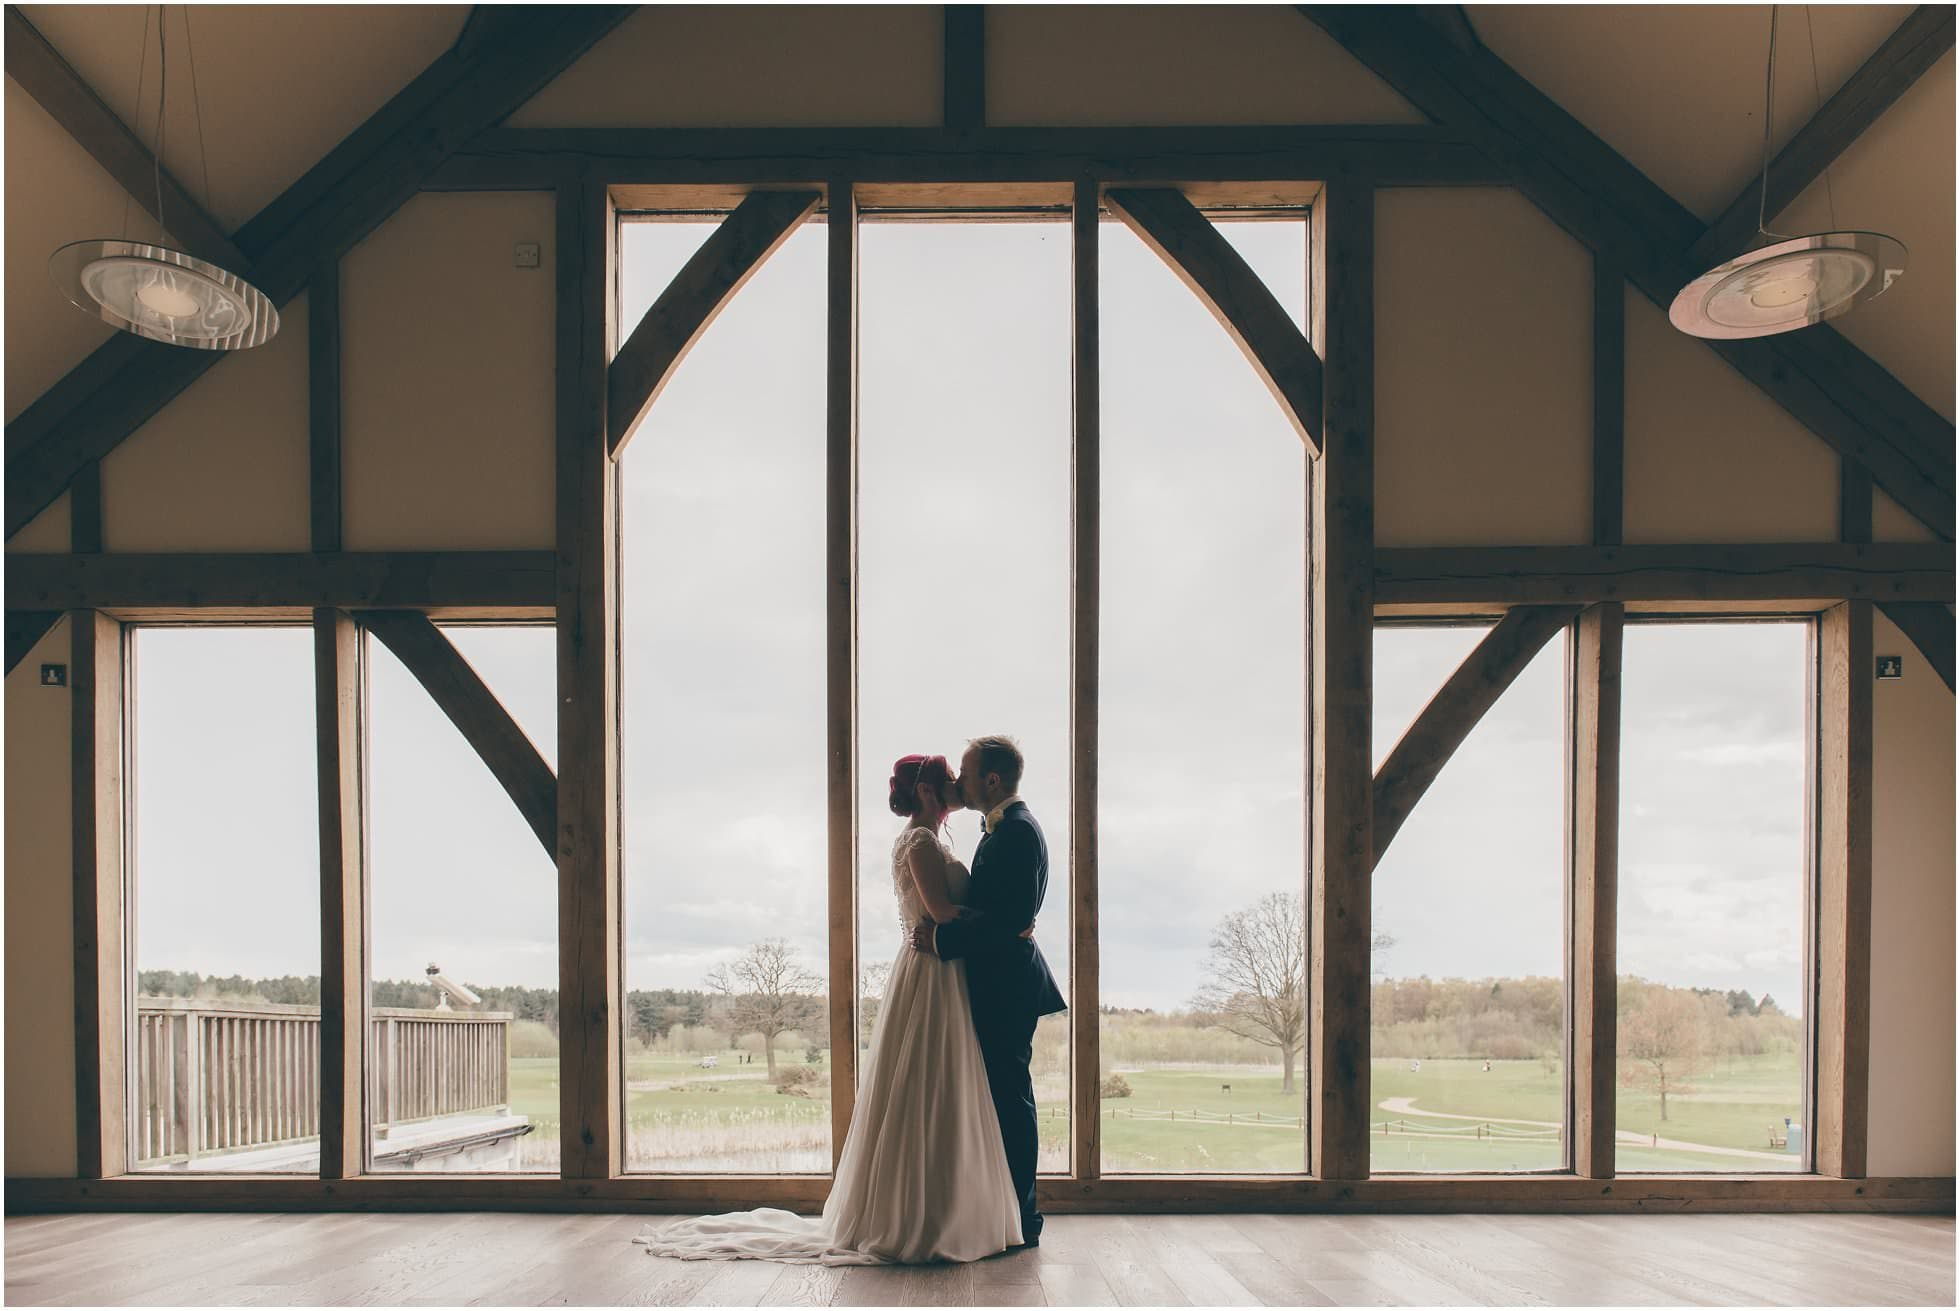 Gorgeous silhouette wedding shot in front of the big glass windows at Sandburn Hall